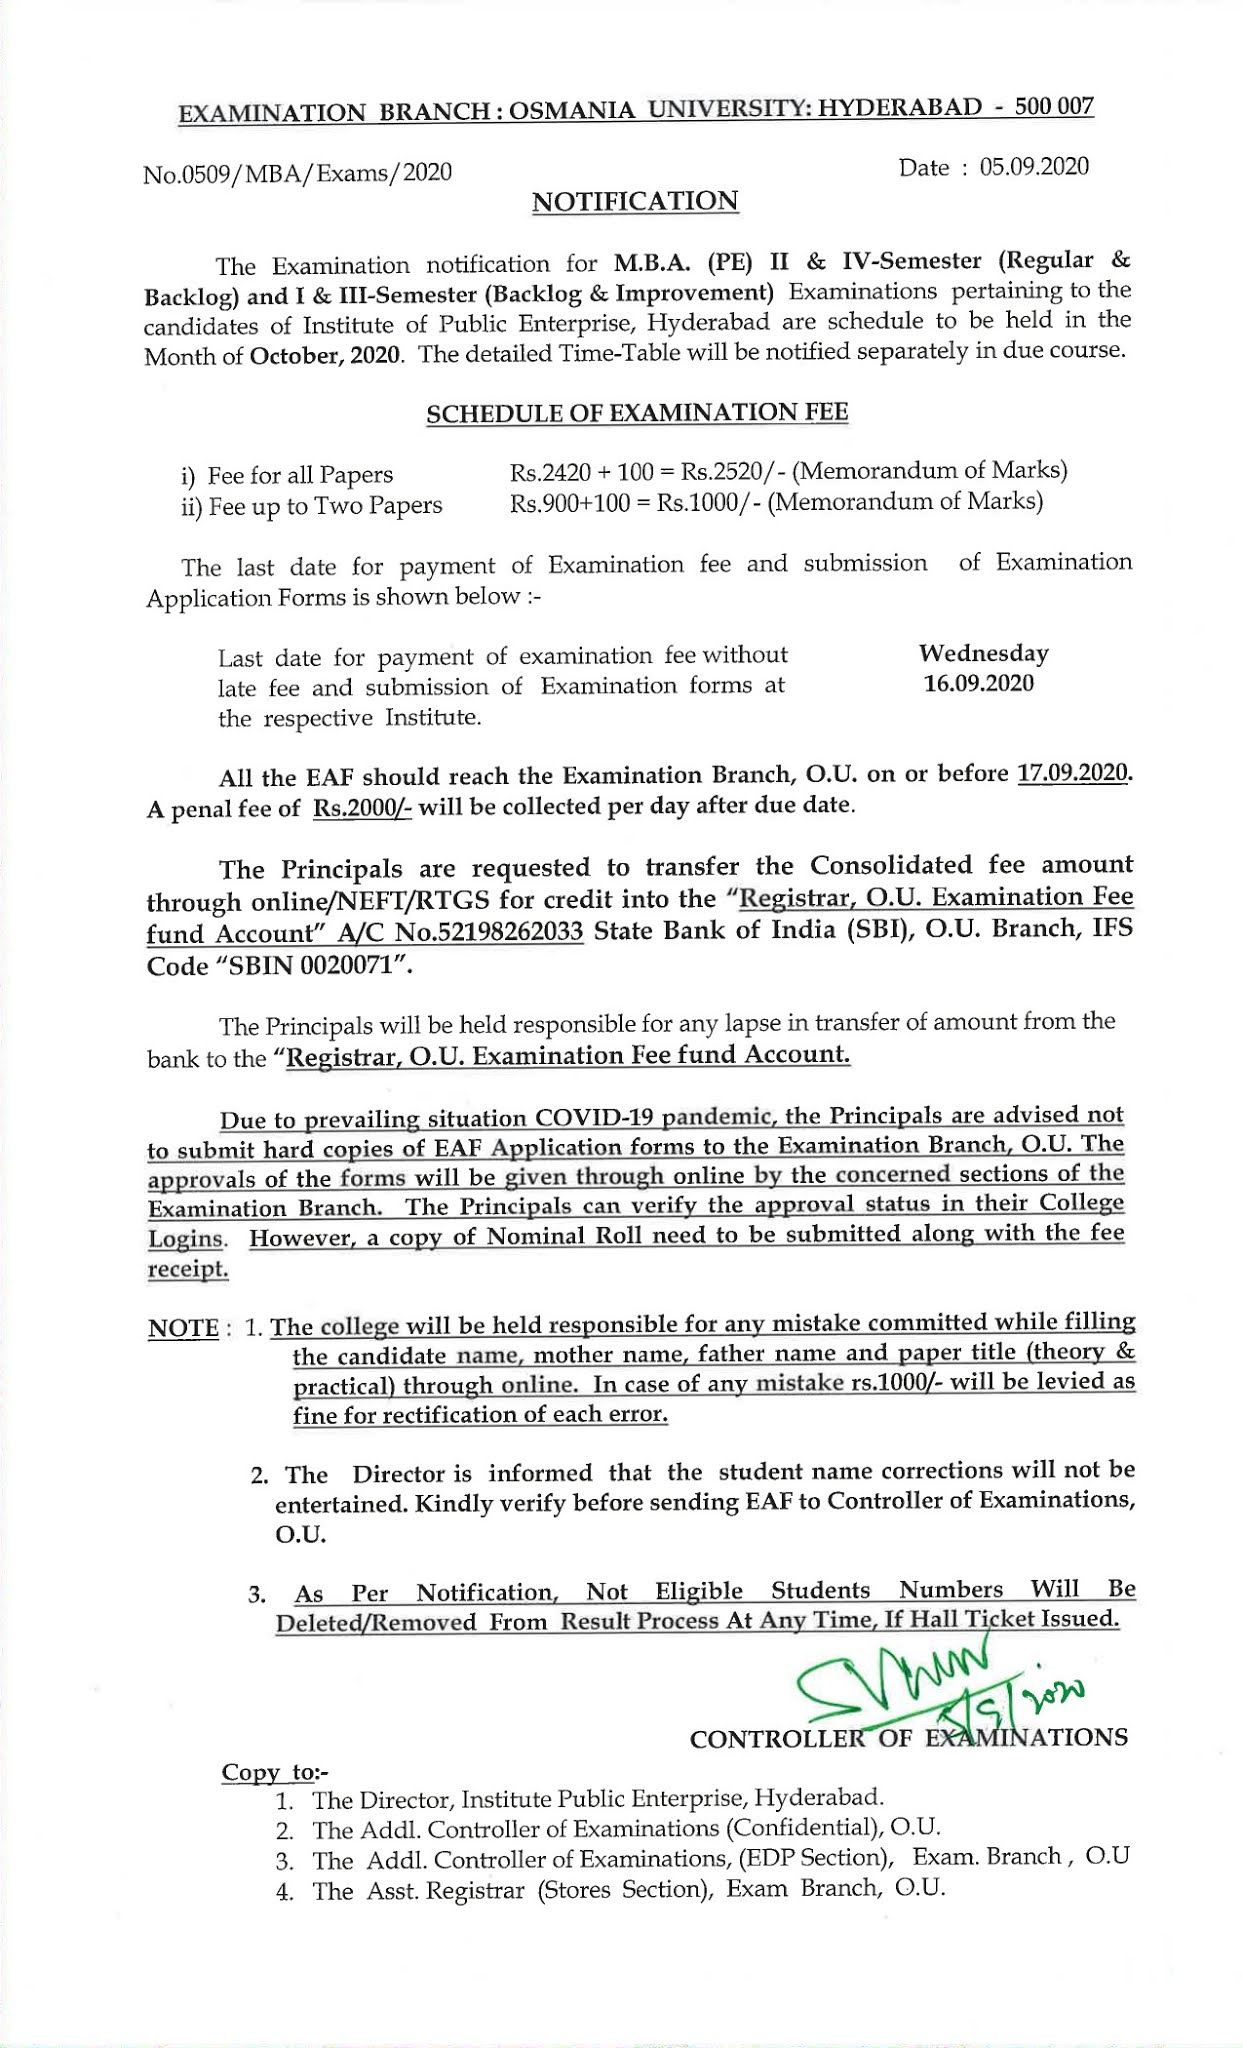 Osmania University MBA (PE) 1st To 4th Sem Oct 2020 Exam Fee Notification